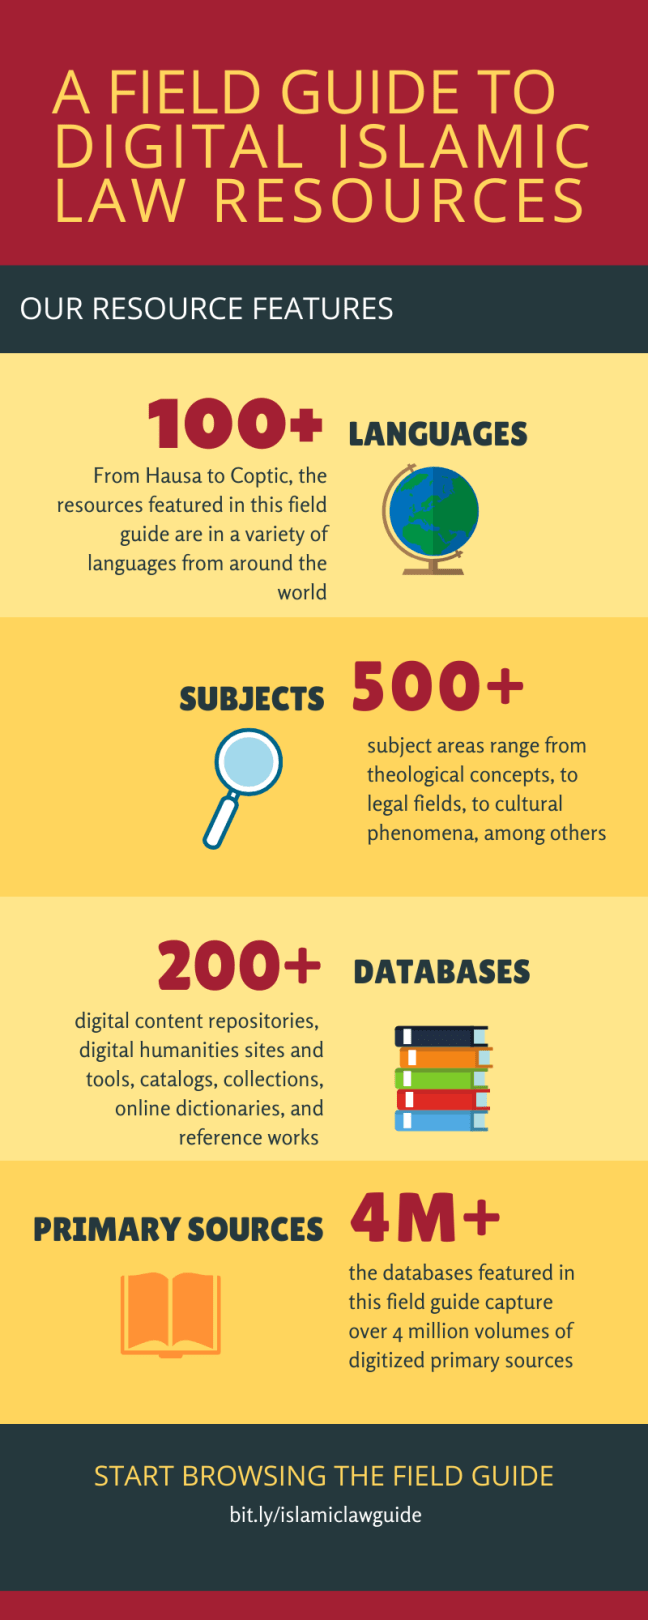 Field Guide to Digital Islamic Law Resources Infographic